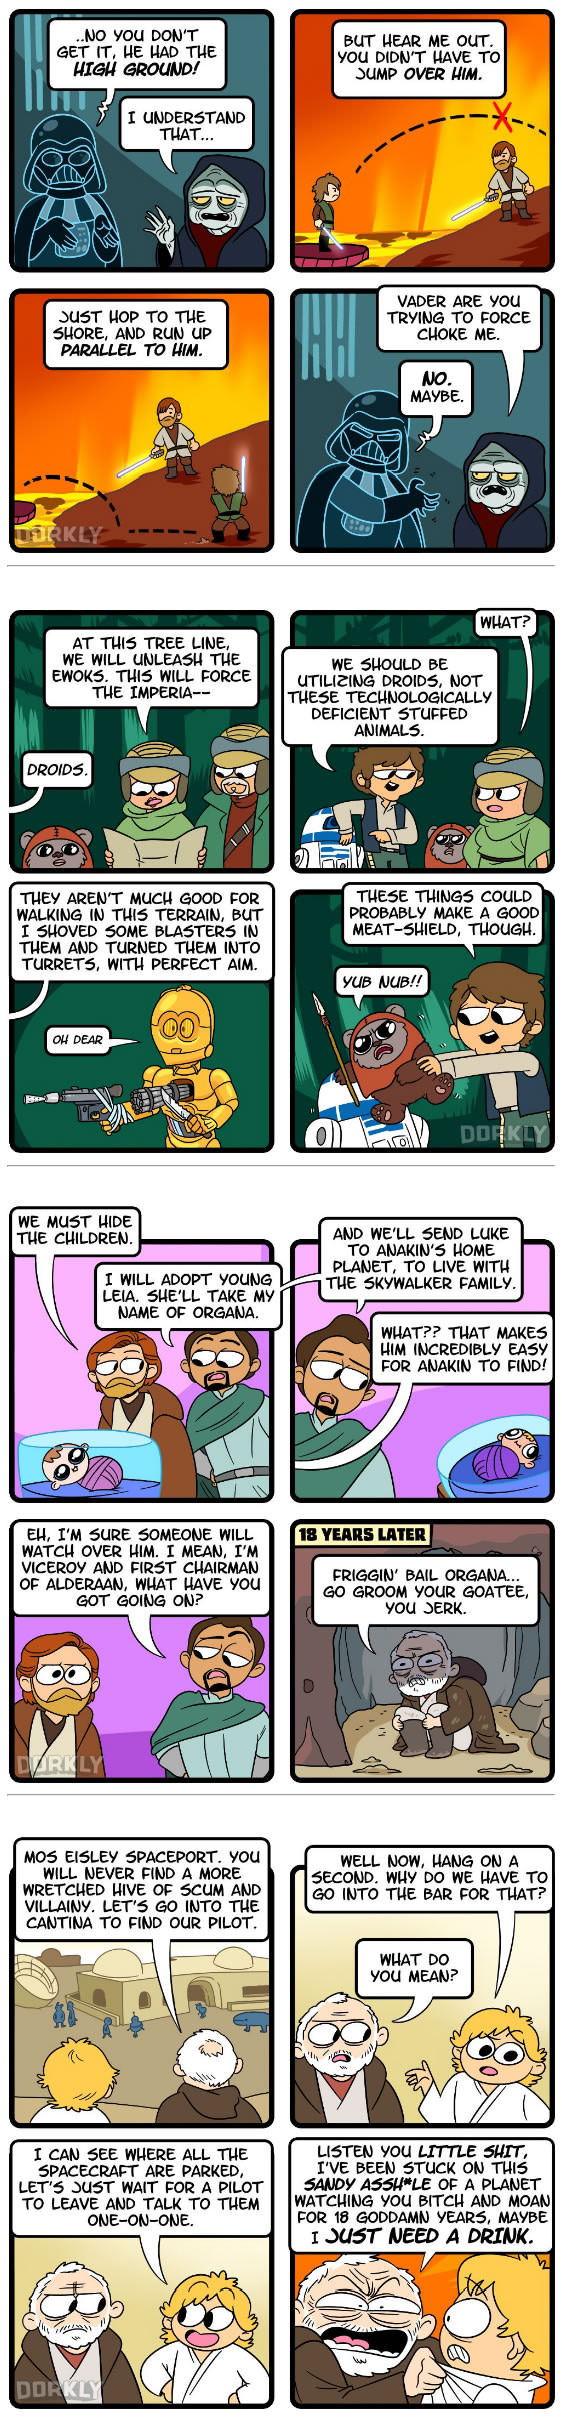 Legit Questions About Star Wars